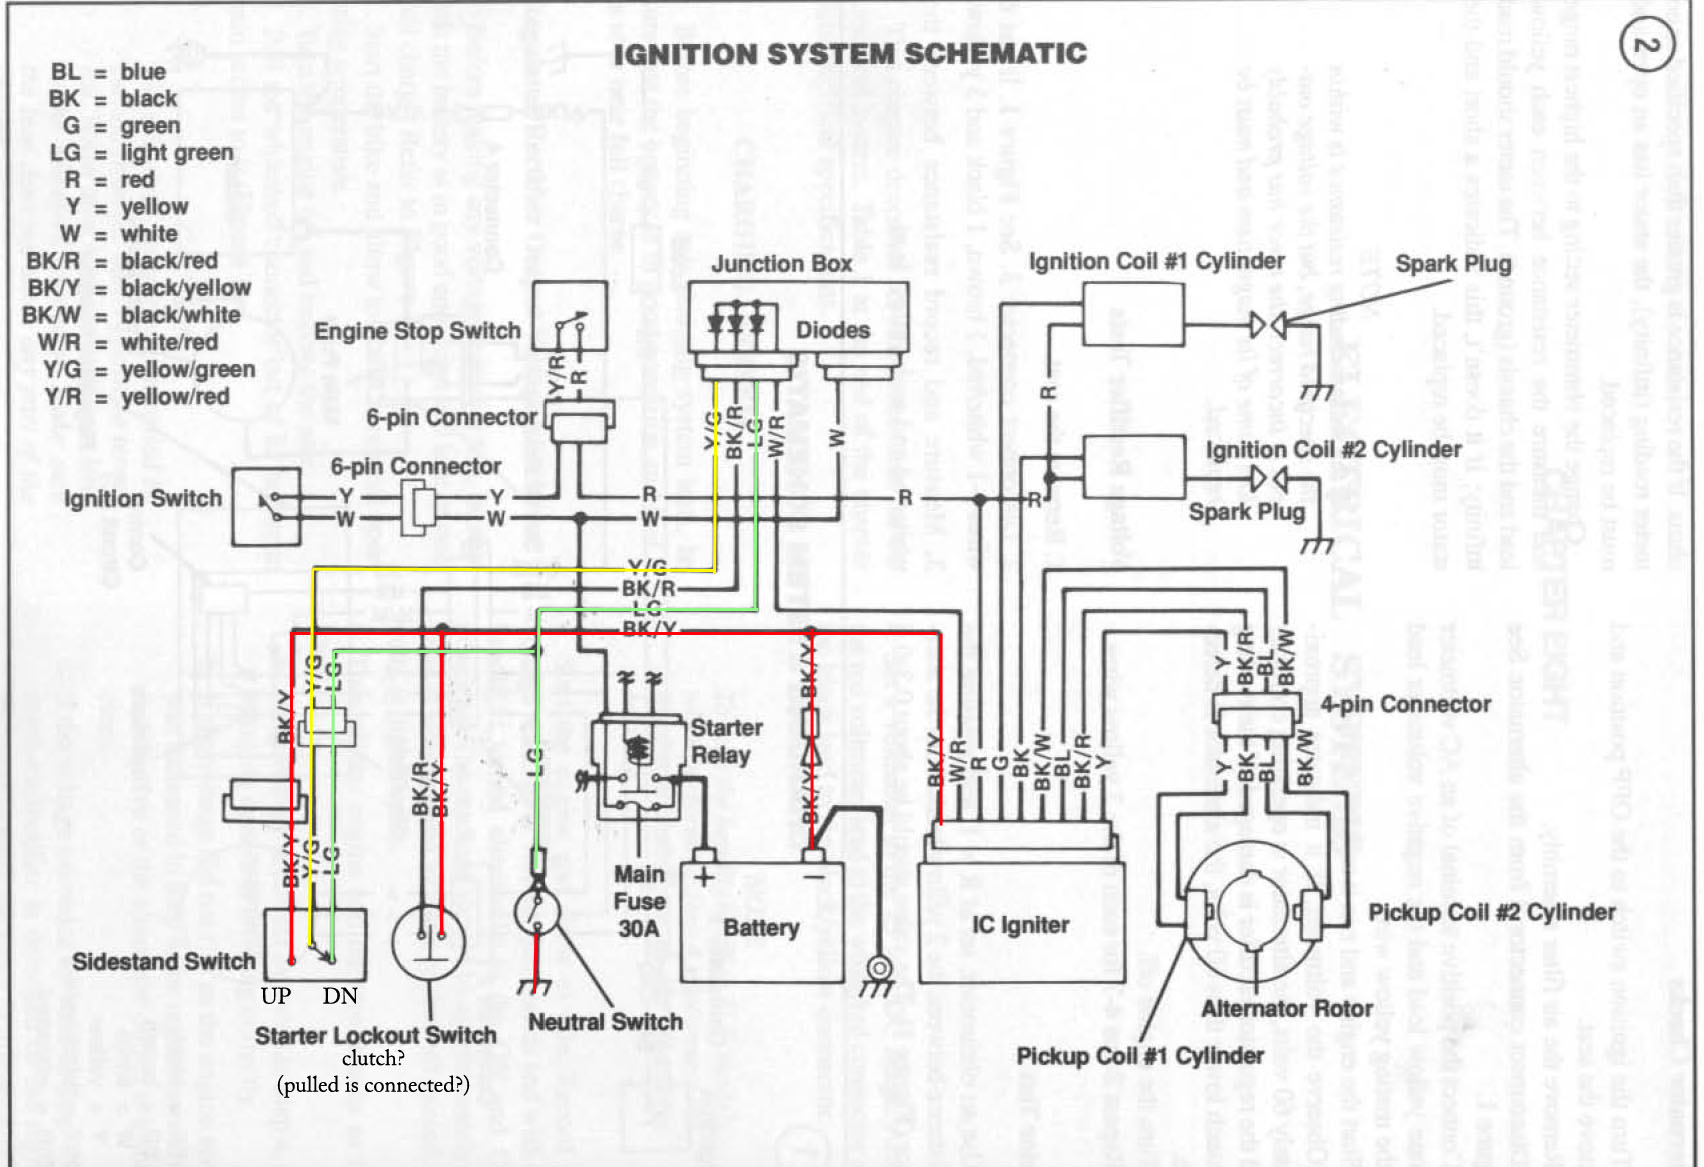 Kawasaki_EX_500_ignition kawasaki klf 300 wiring diagram kawasaki mule engine diagram ninja 250r wiring diagram at creativeand.co